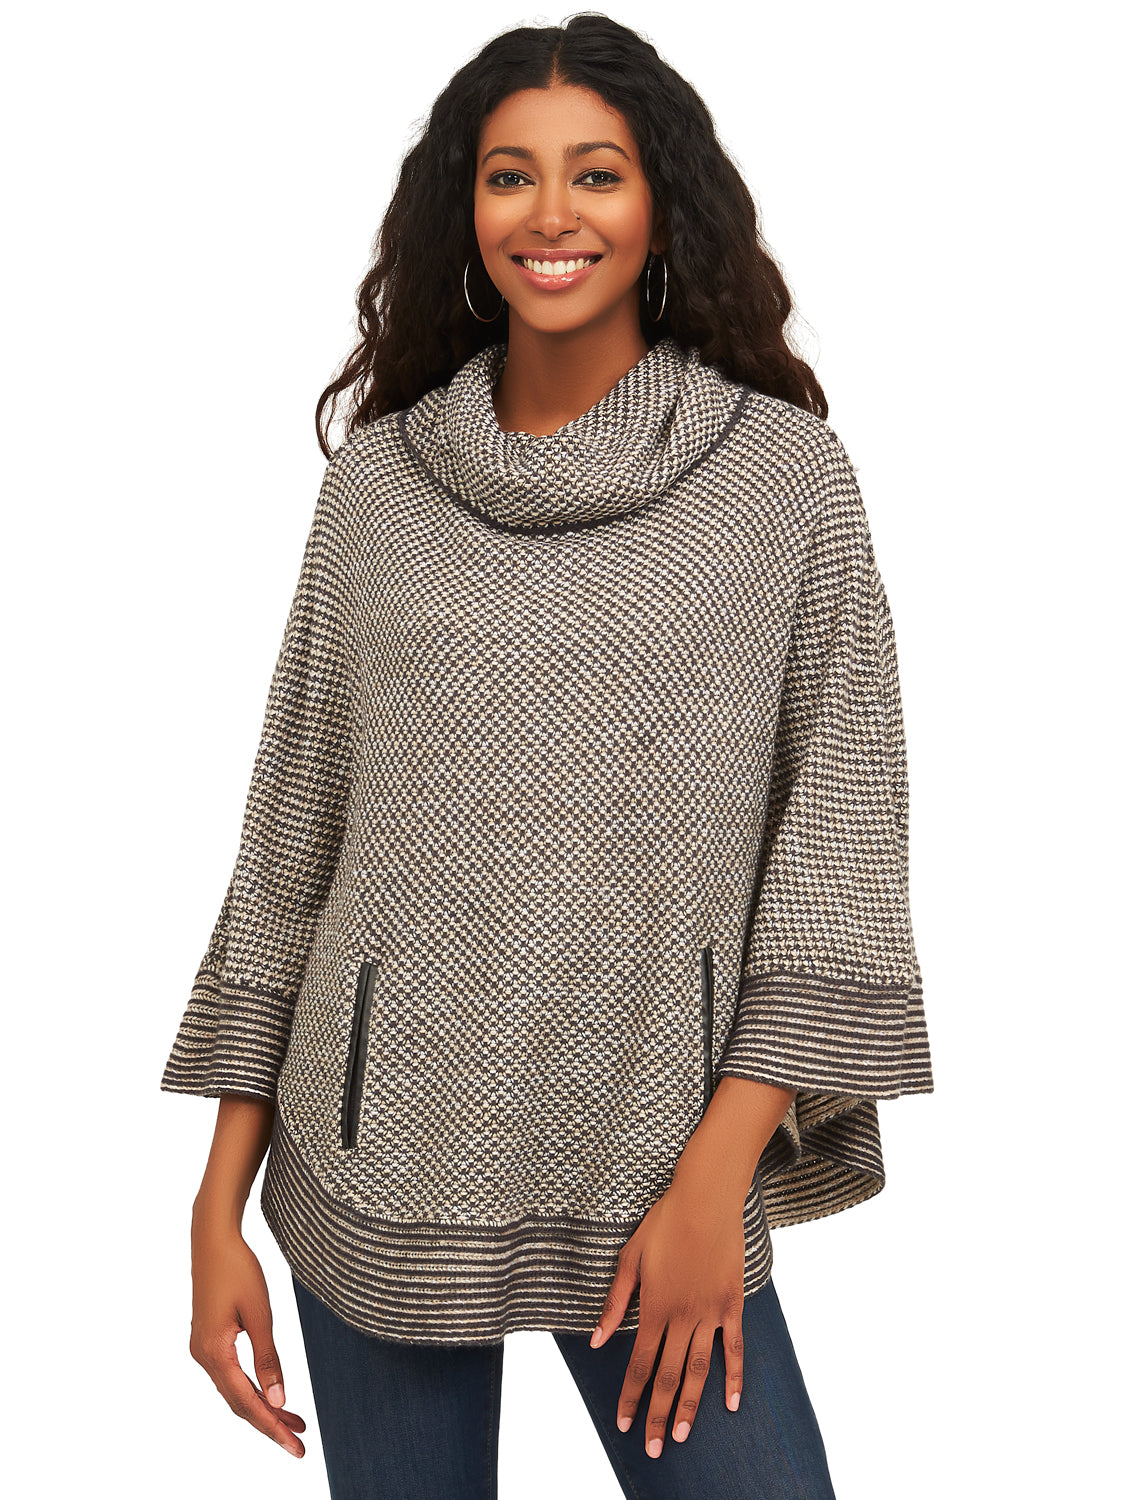 Cowl Neck Knit Sweater Poncho